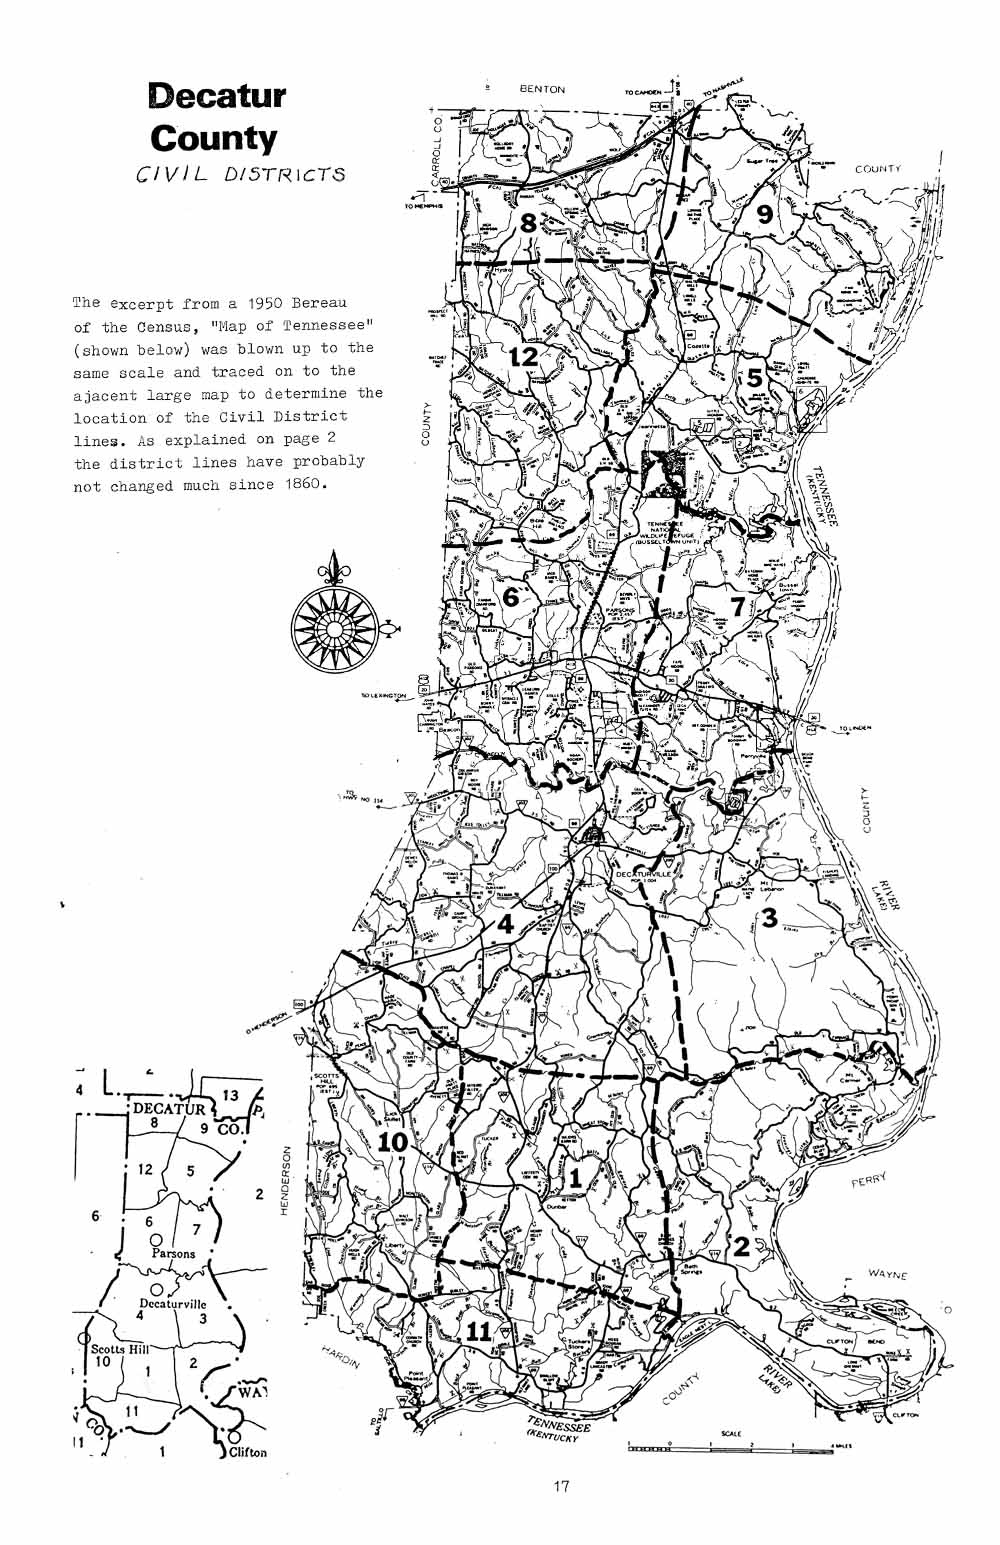 Decatur County Civil Districts 1860 To 1960